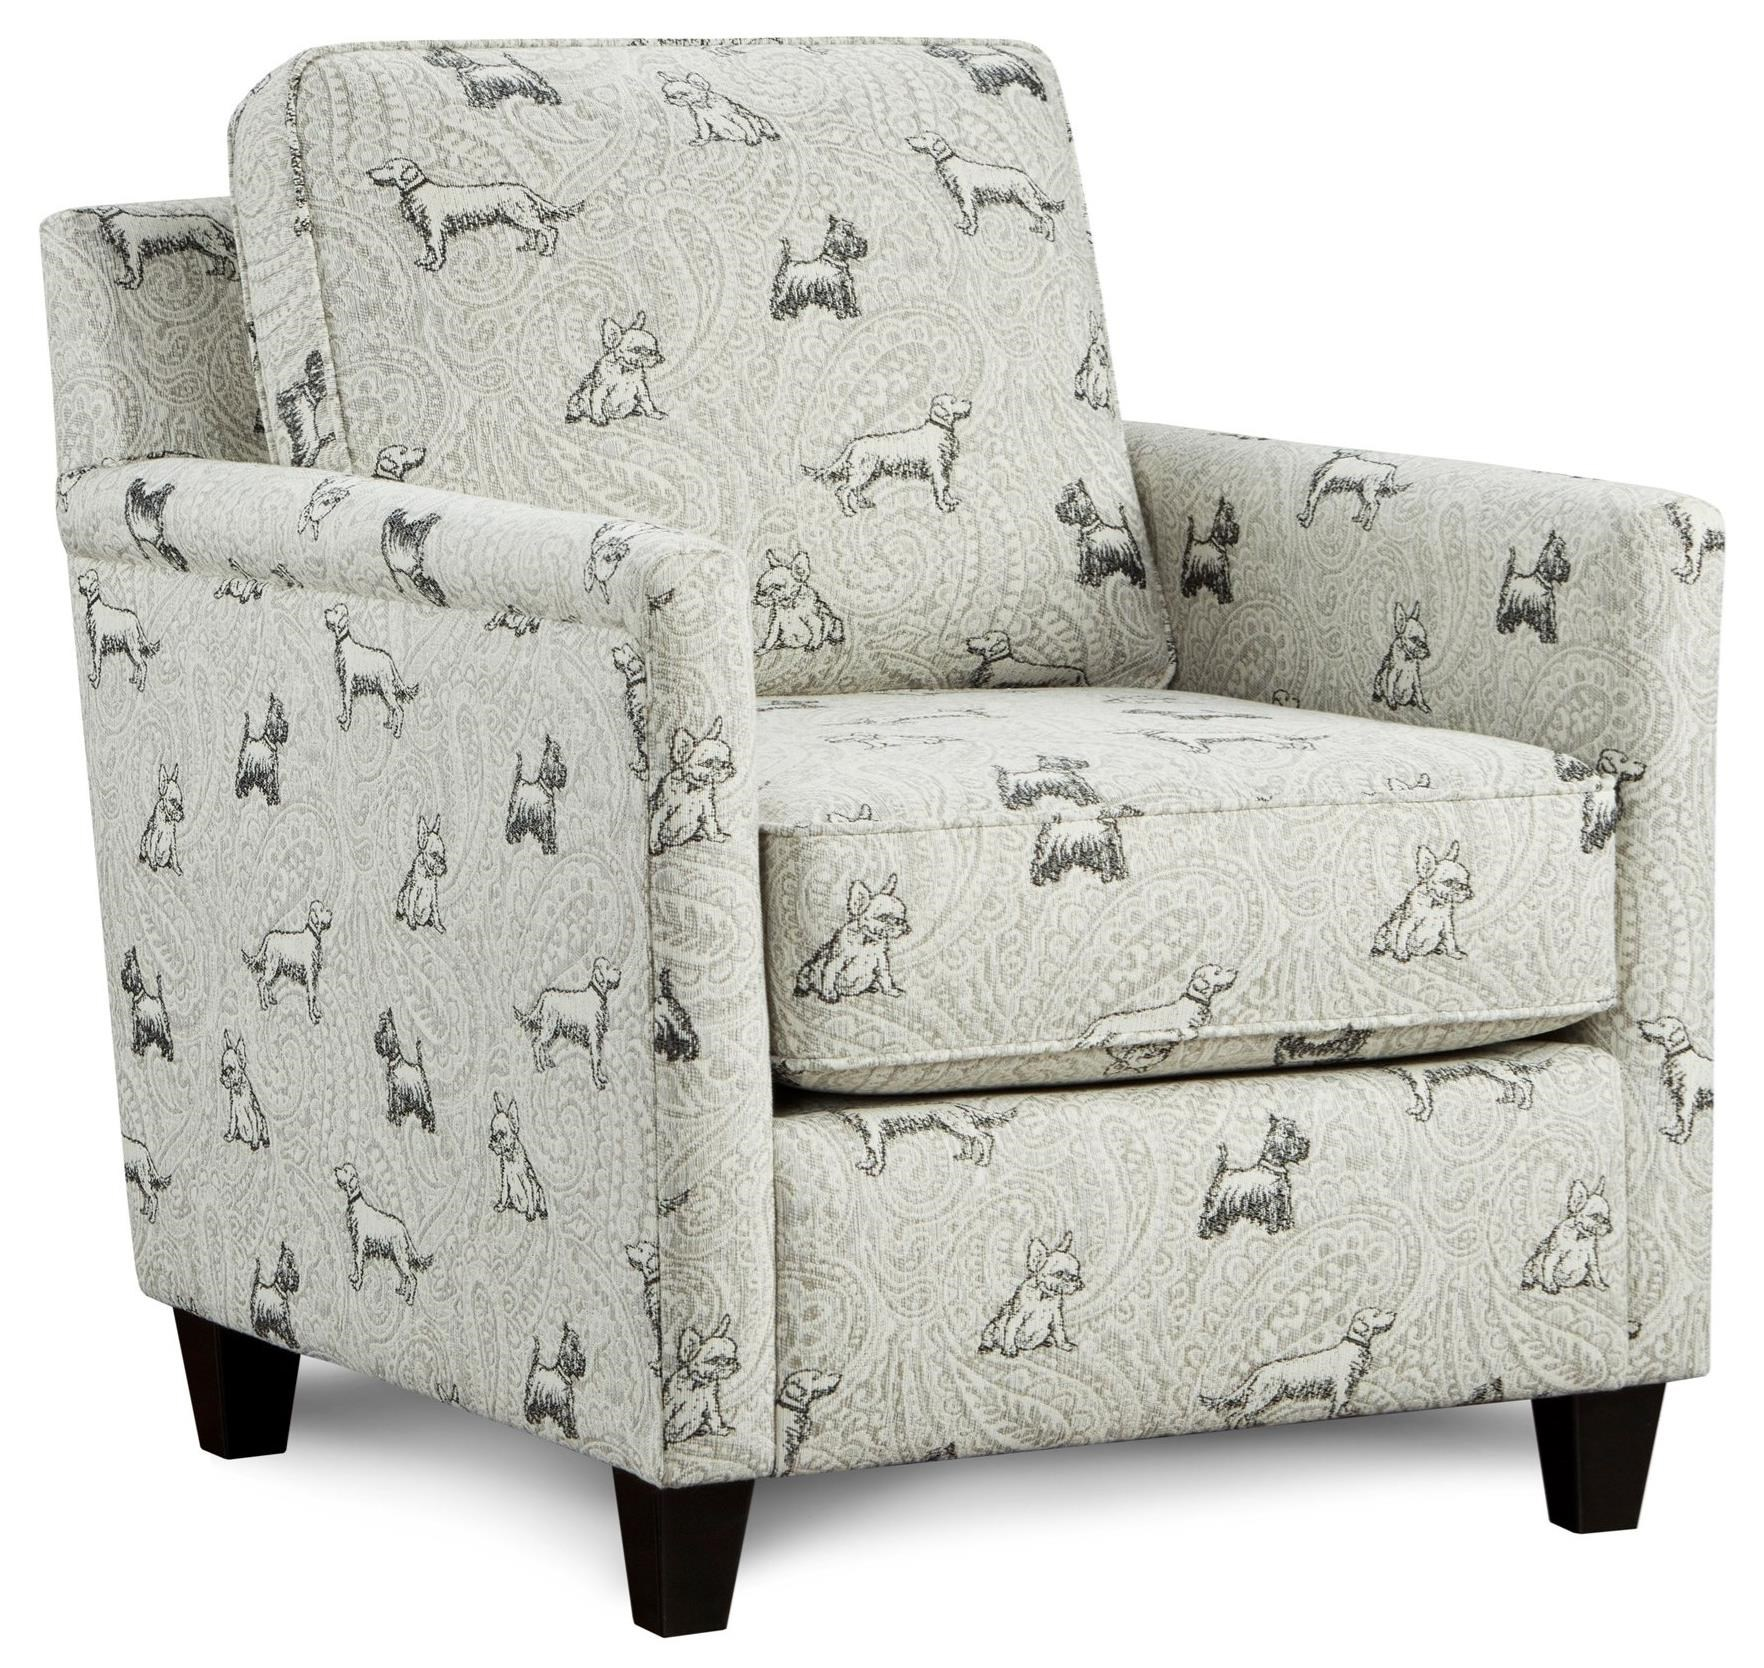 Fusion Furniture 21 02 Accent Chair Darvin Furniture Upholstered Chairs